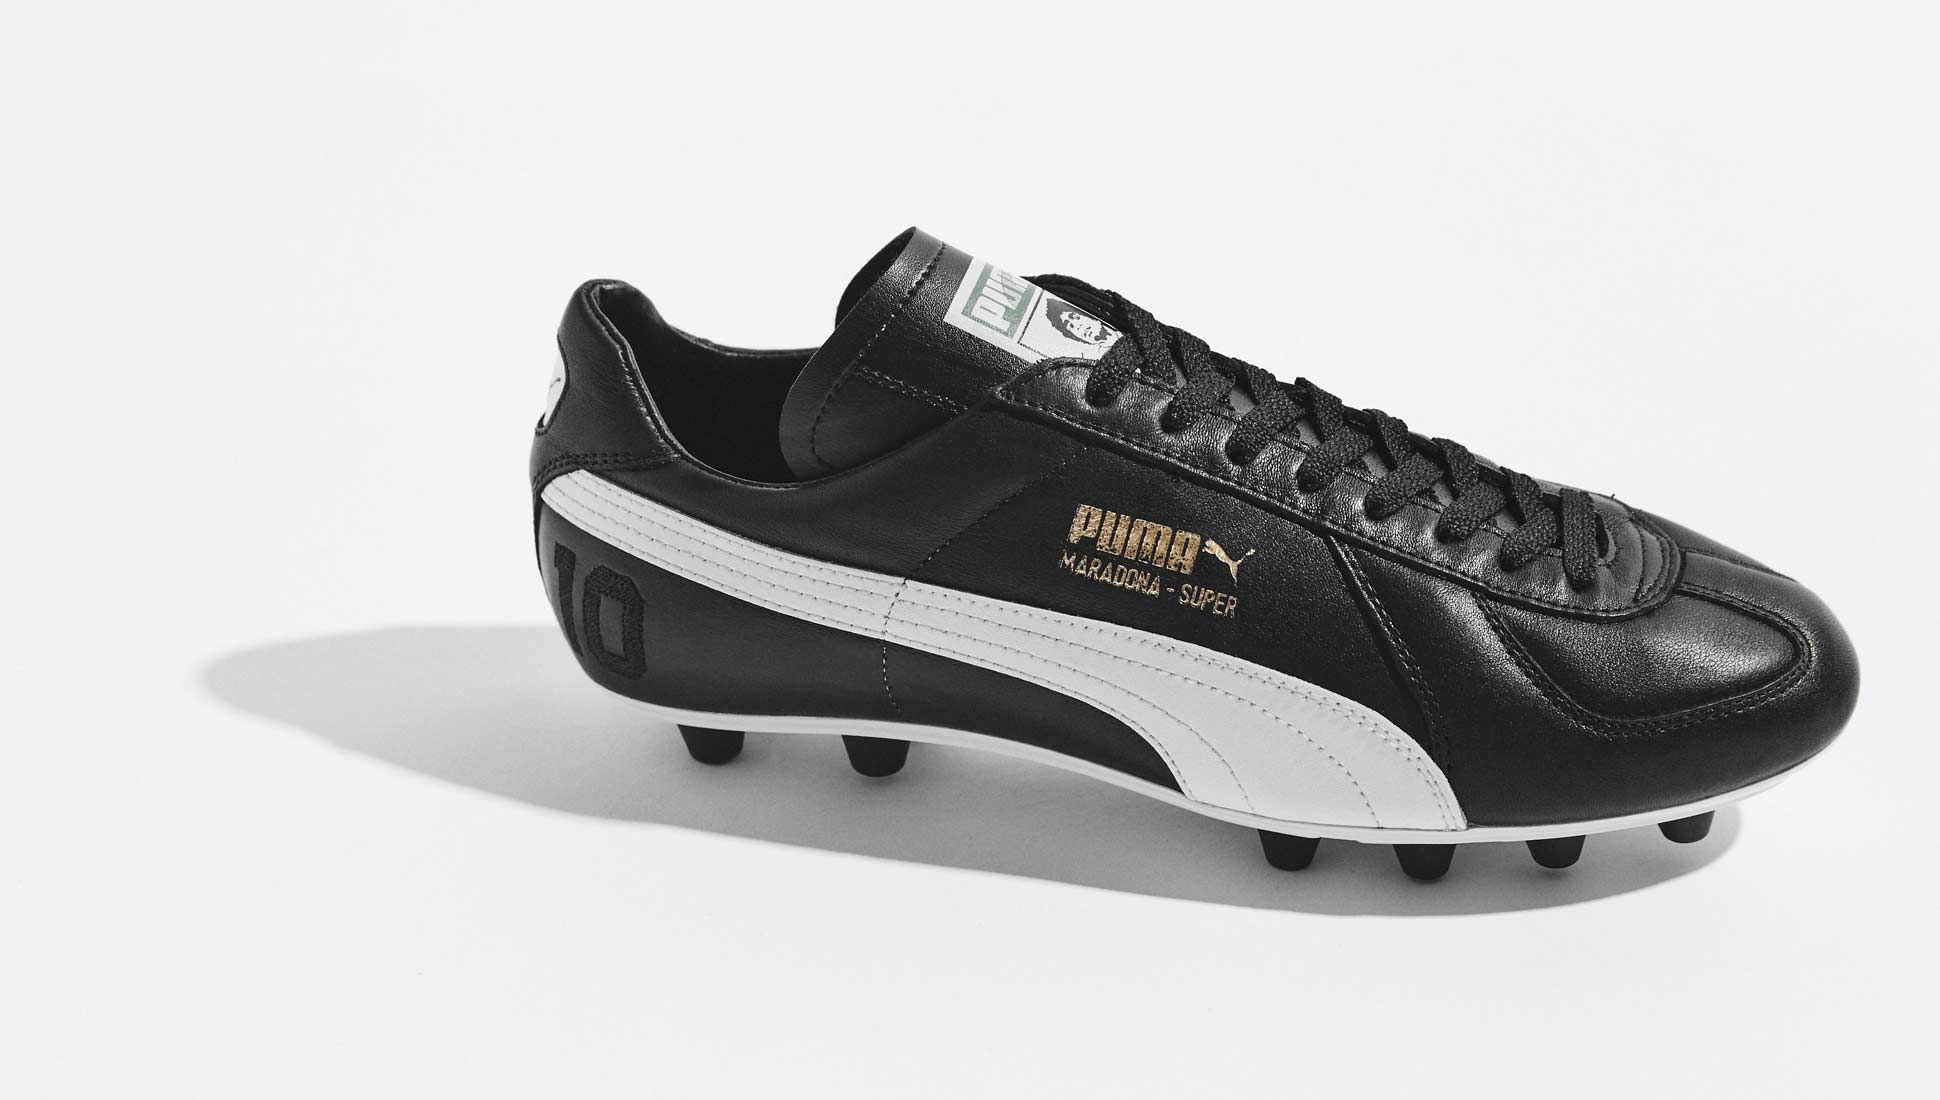 PUMA King Maradona Super  9c66fc886